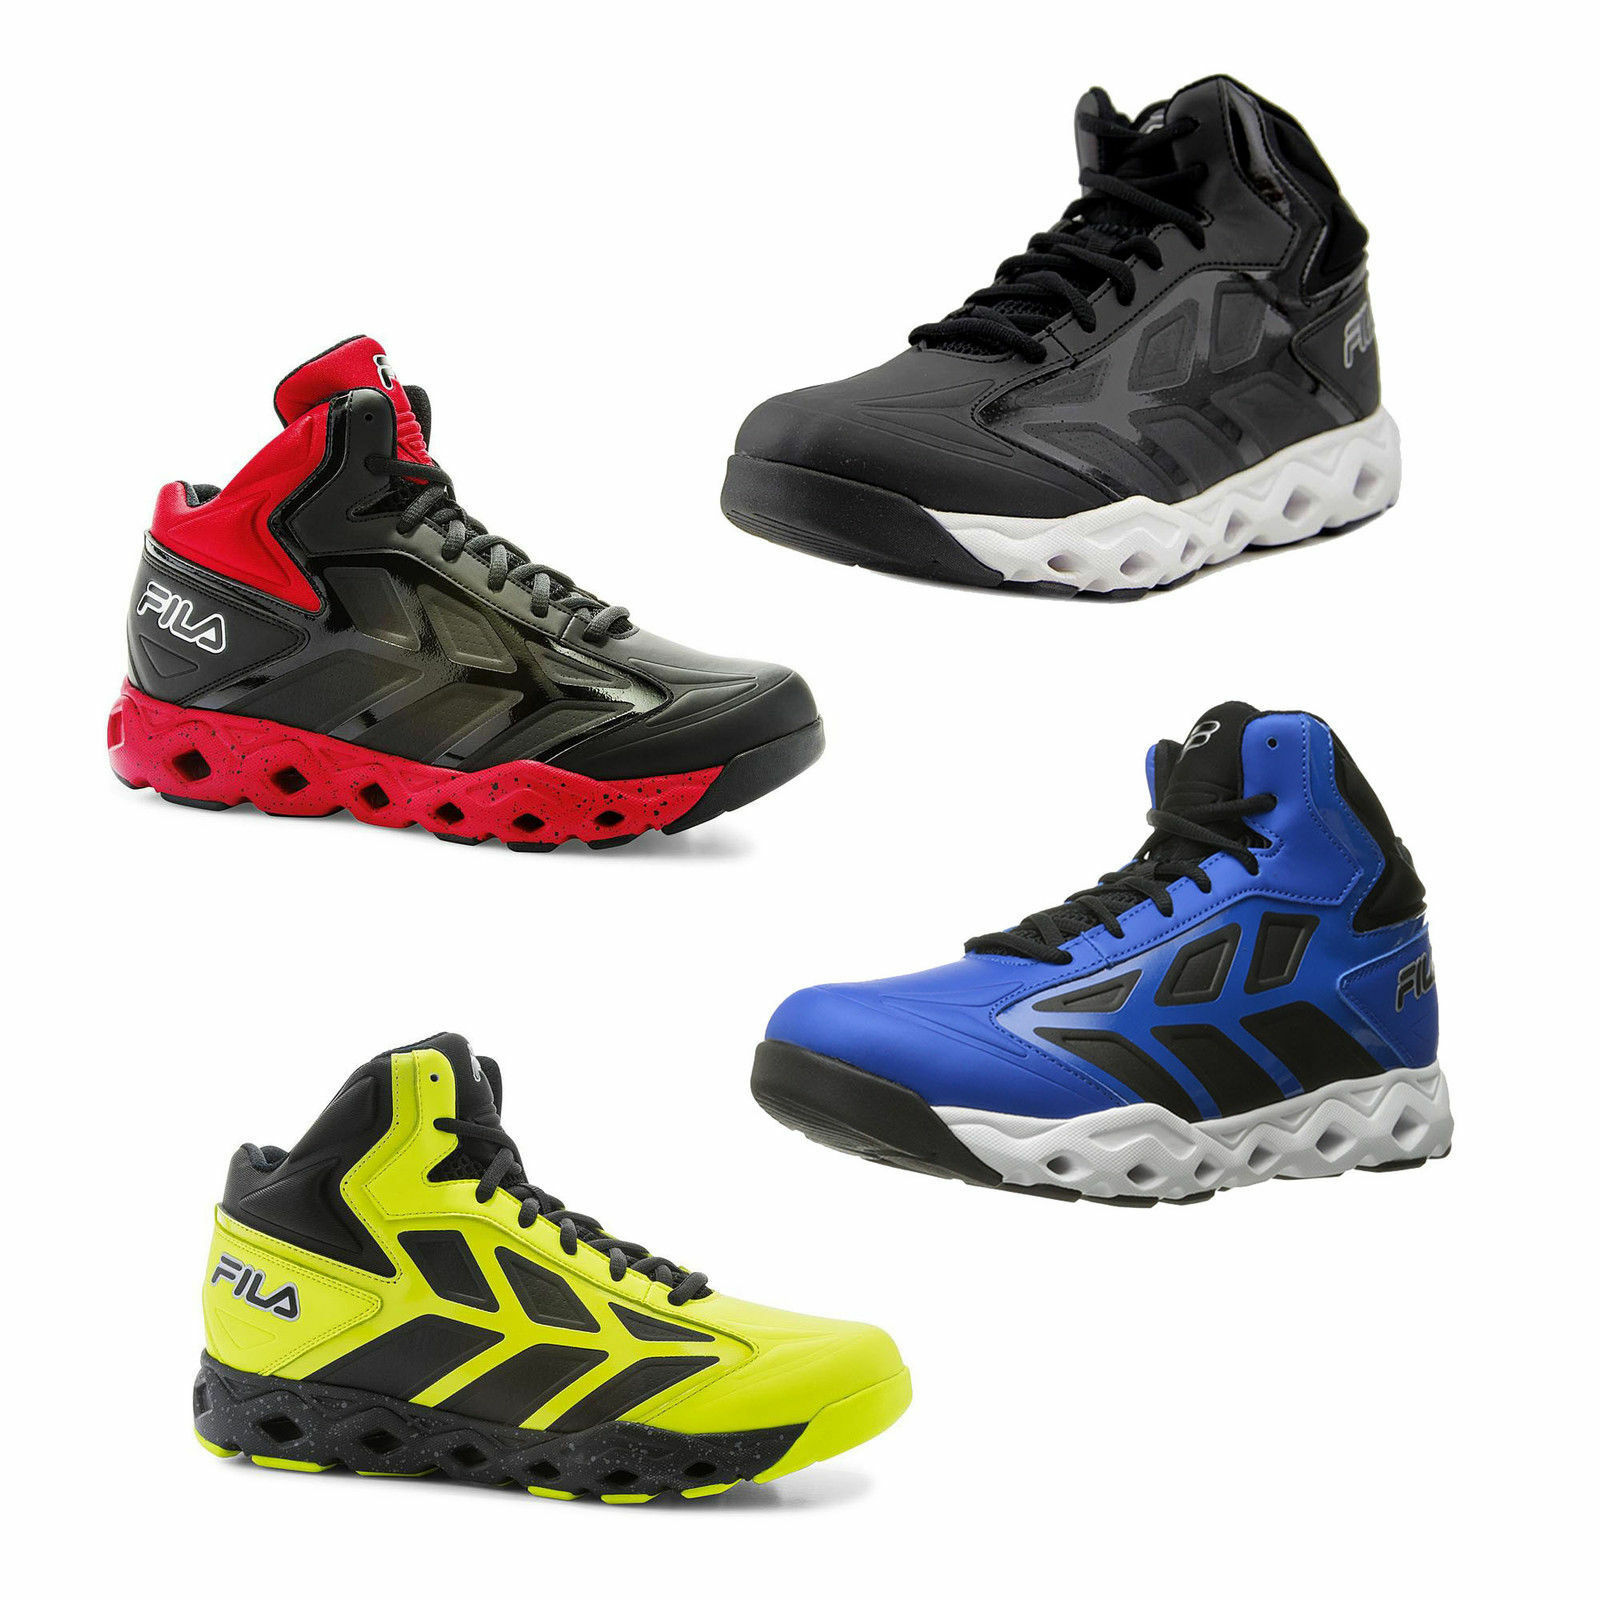 Fila TORRANADO Mens High Top Athletic Basketball Sneakers Shoes New shoes for men and women, limited time discount